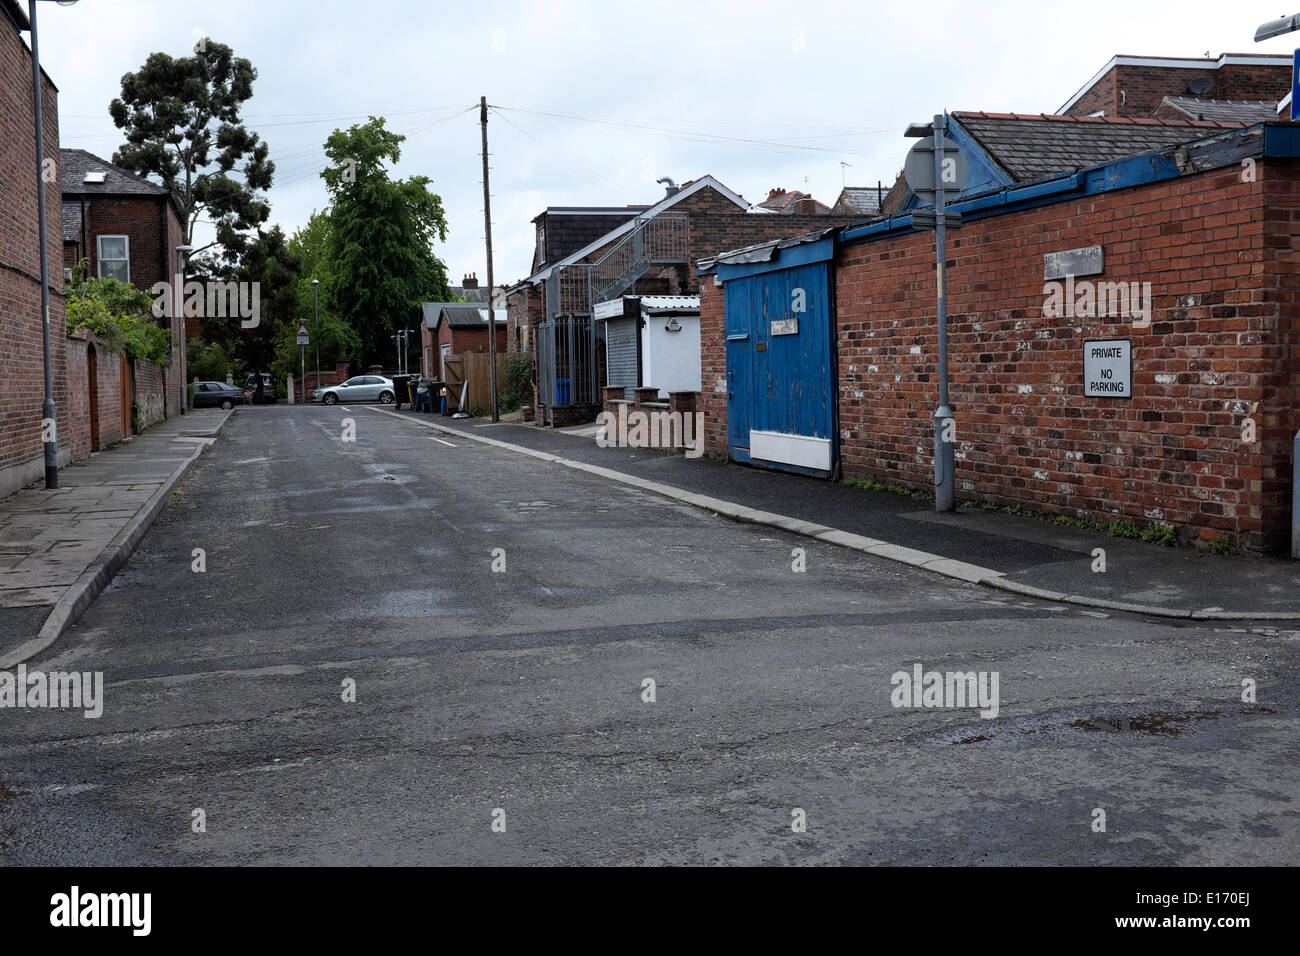 a  suburban street with no parked vehicles - Stock Image